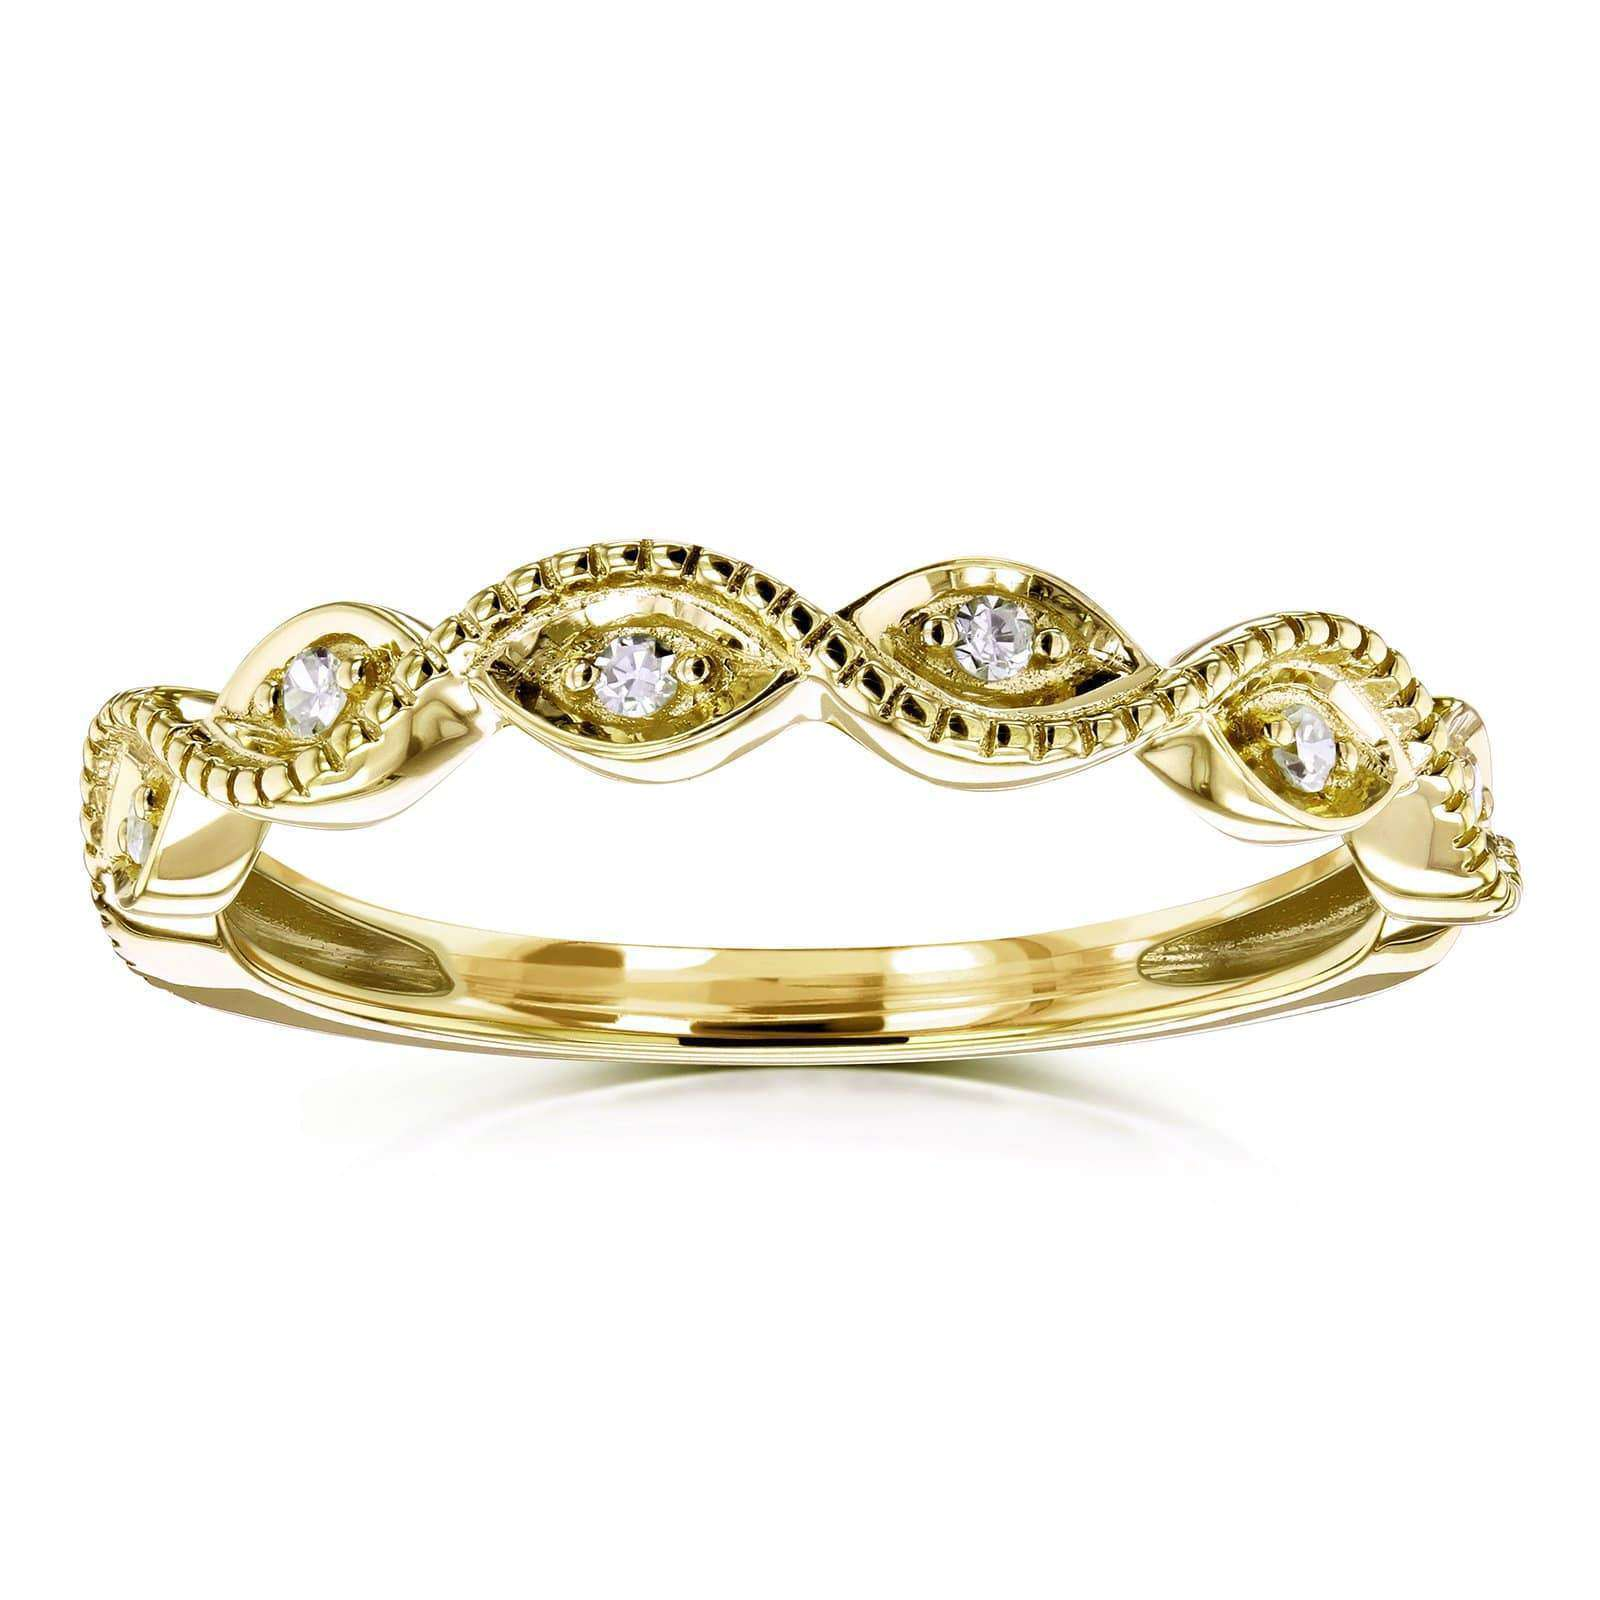 Top Accent Diamond Stackable Braided Fashion Ring in 10k Yellow Gold - 8.5